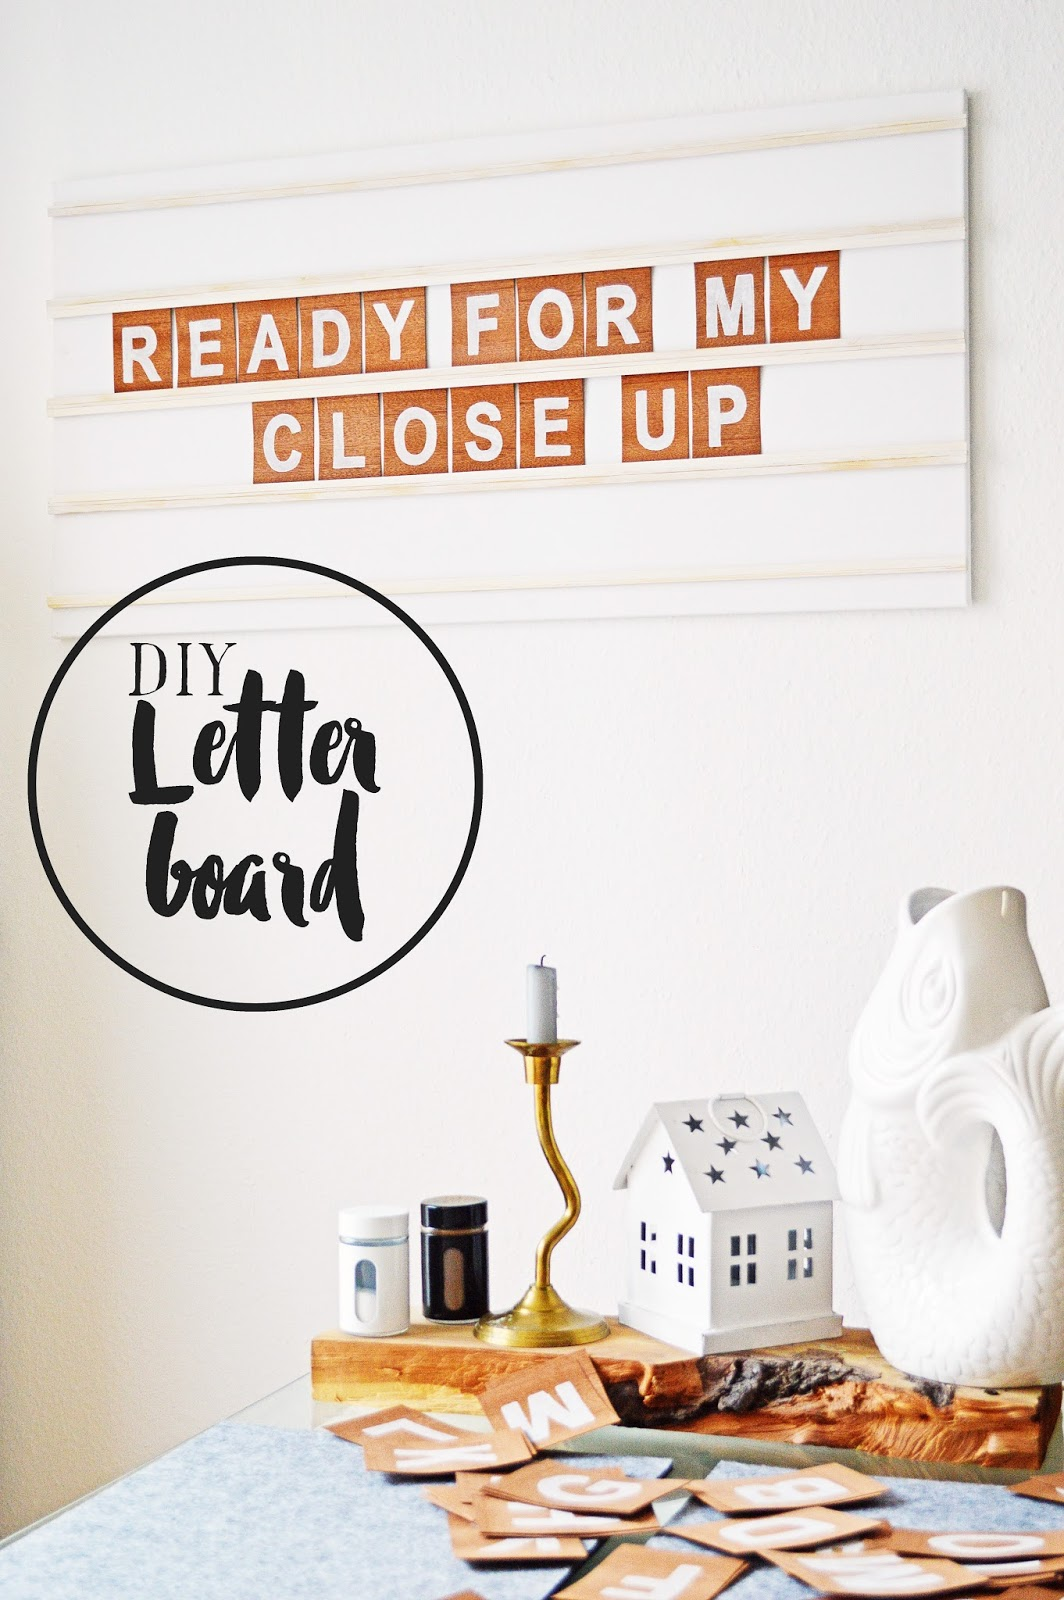 DIY Letter Board, Motte's Blog